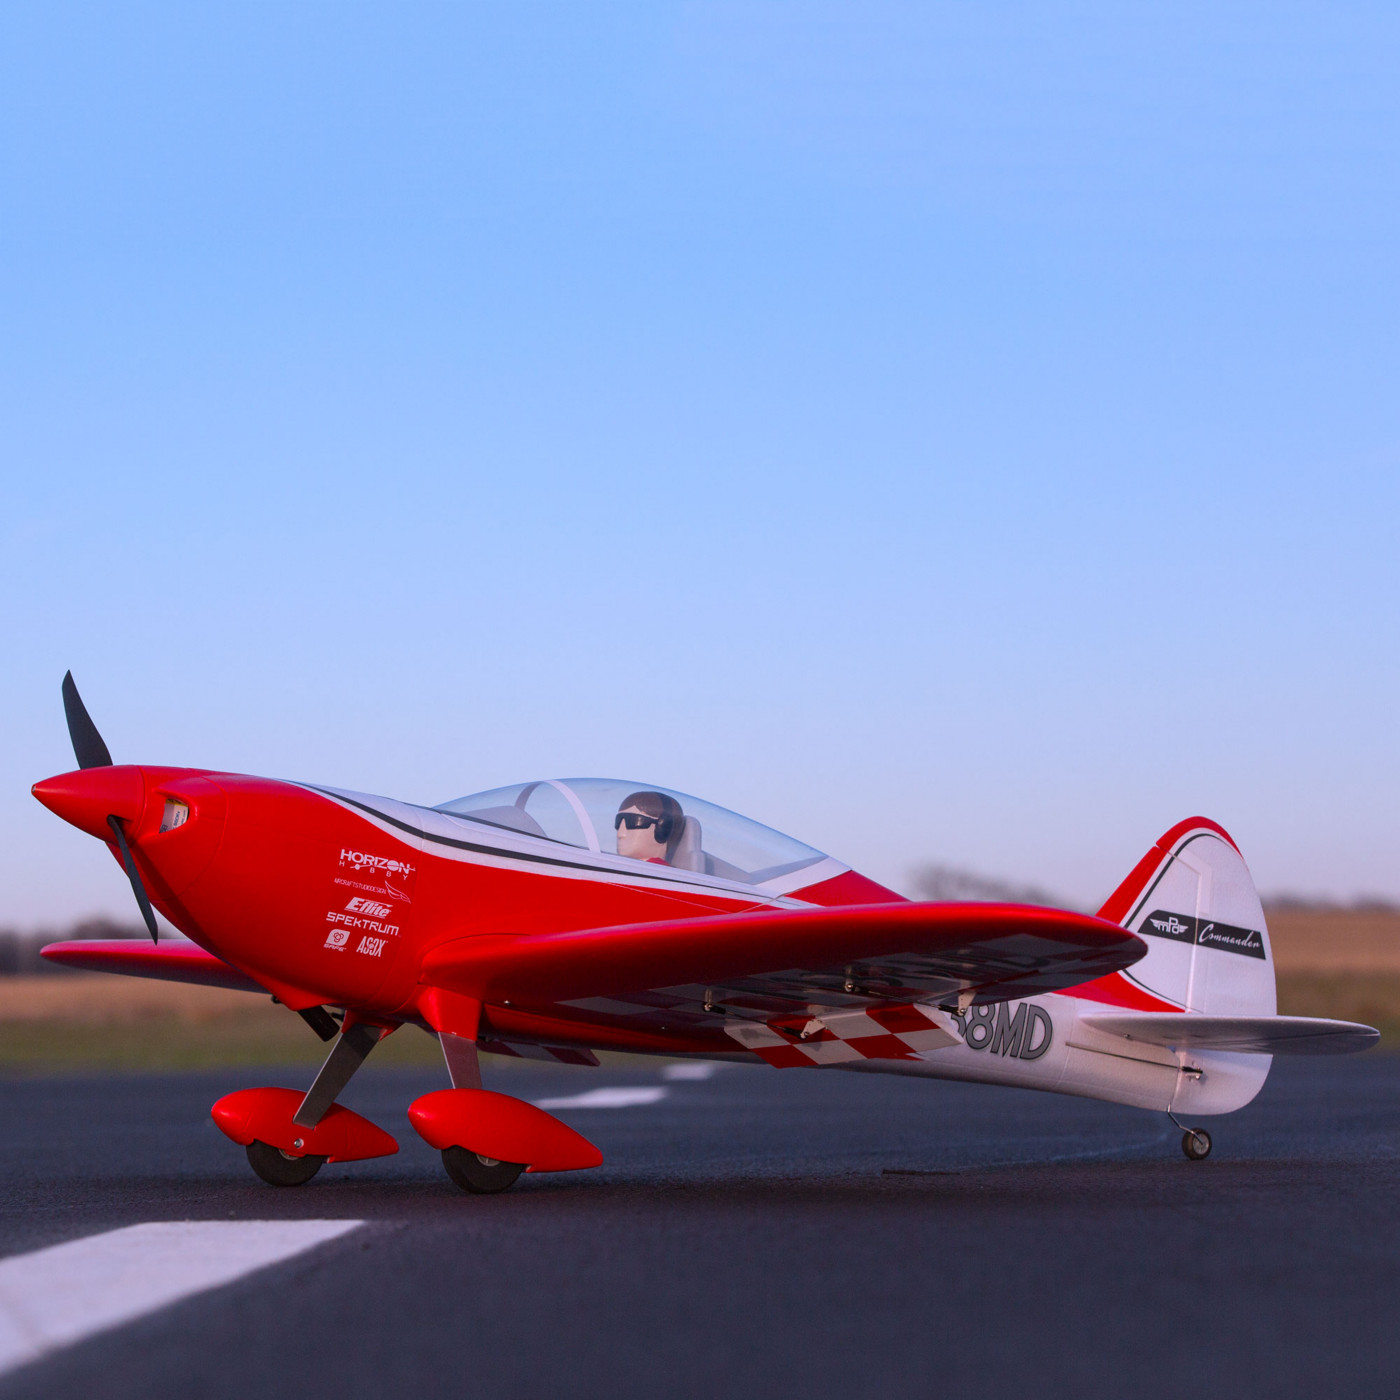 E-flite Commander mPd 1.4m Sport RC Airplane